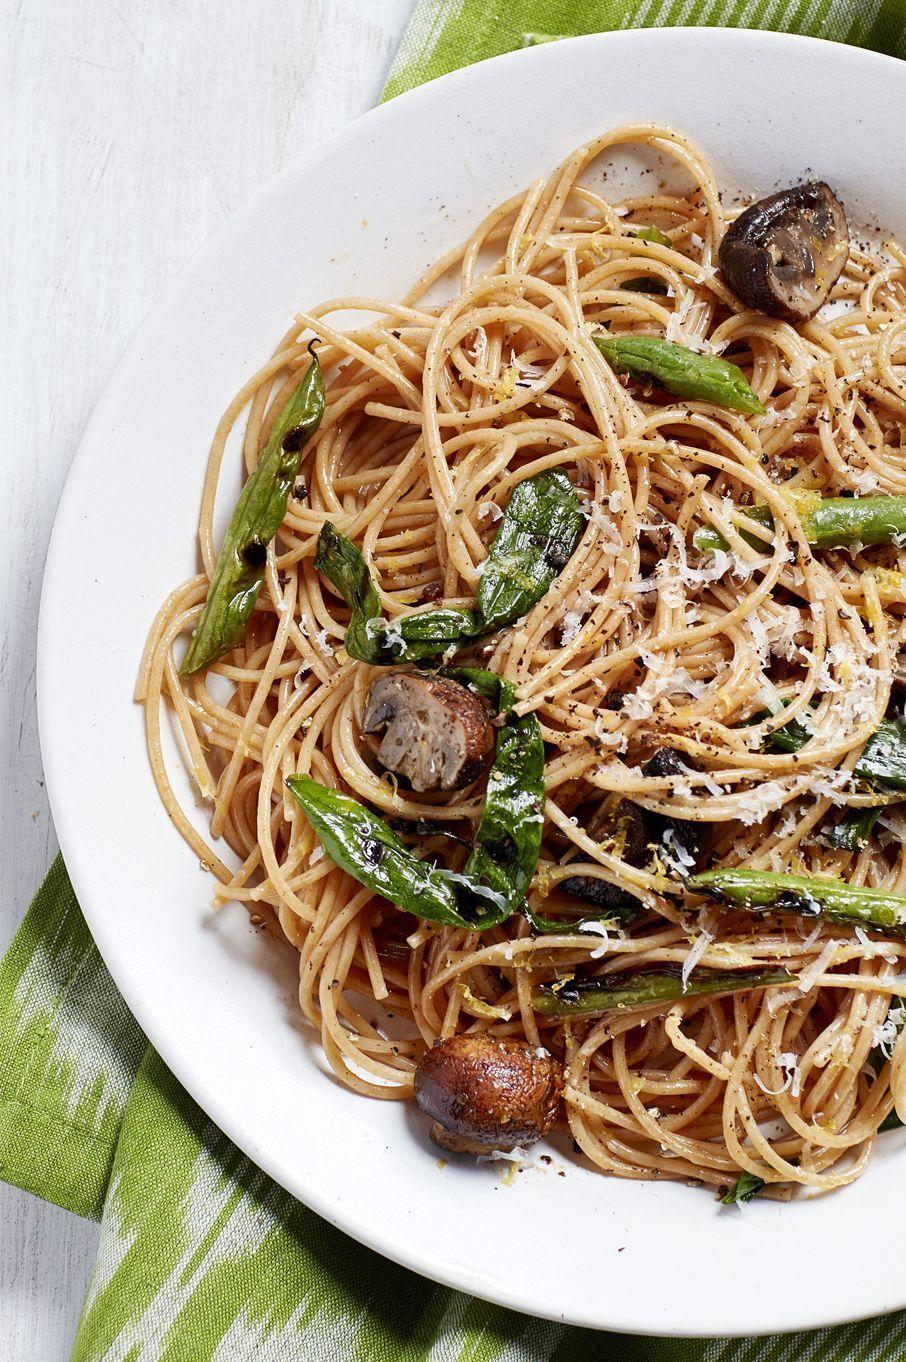 "<p>Though this whole wheat pasta with lemon and green beans is light and fresh, each serving is packed with 17 g of protein to keep you full until your next meal.</p><p><a href=""https://www.womansday.com/food-recipes/food-drinks/recipes/a58984/spaghetti-grilled-green-beans-mushrooms/"" rel=""nofollow noopener"" target=""_blank"" data-ylk=""slk:Get the Spaghetti with Grilled Green Beans and Mushrooms recipe."" class=""link rapid-noclick-resp""><em><strong>Get the Spaghetti with Grilled Green Beans and Mushrooms recipe.</strong></em></a></p><p><strong><a class=""link rapid-noclick-resp"" href=""https://www.amazon.com/LiveFresh-Stainless-Micro-Perforated-5-Quart-Colander/dp/B0166P6QNM?tag=syn-yahoo-20&ascsubtag=%5Bartid%7C10070.g.2176%5Bsrc%7Cyahoo-us"" rel=""nofollow noopener"" target=""_blank"" data-ylk=""slk:SHOP PASTA STRAINERS"">SHOP PASTA STRAINERS</a></strong></p>"